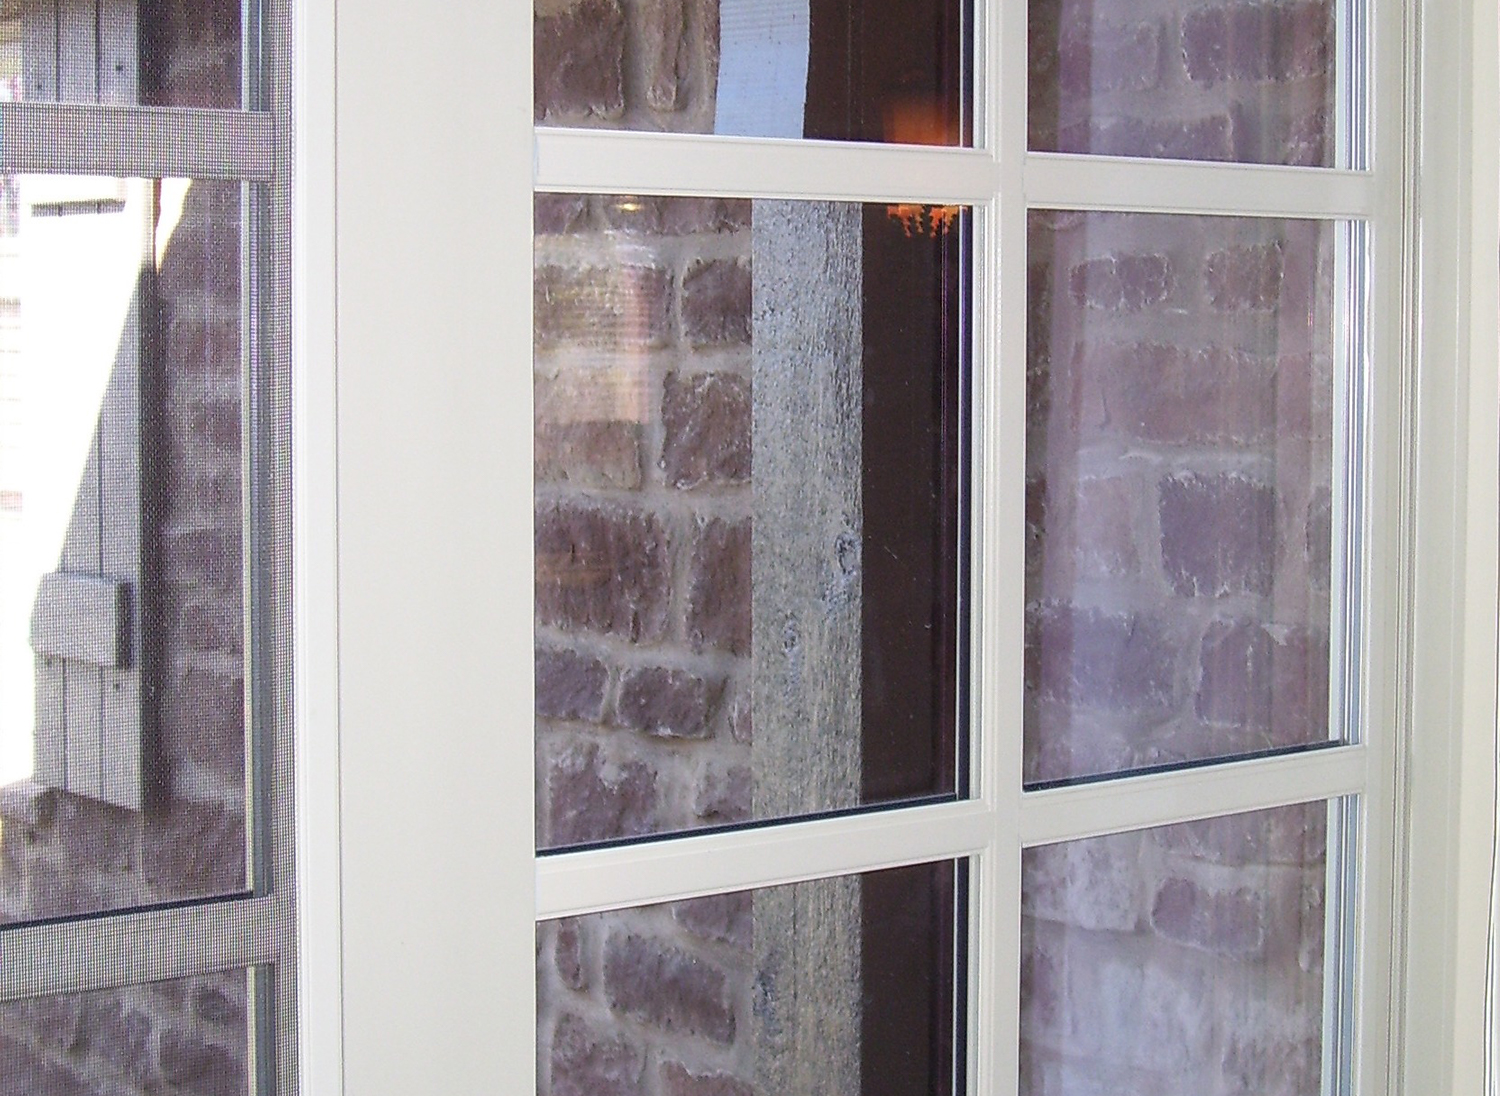 Simulated Divided Lites are permanently applied to both sides of the window.